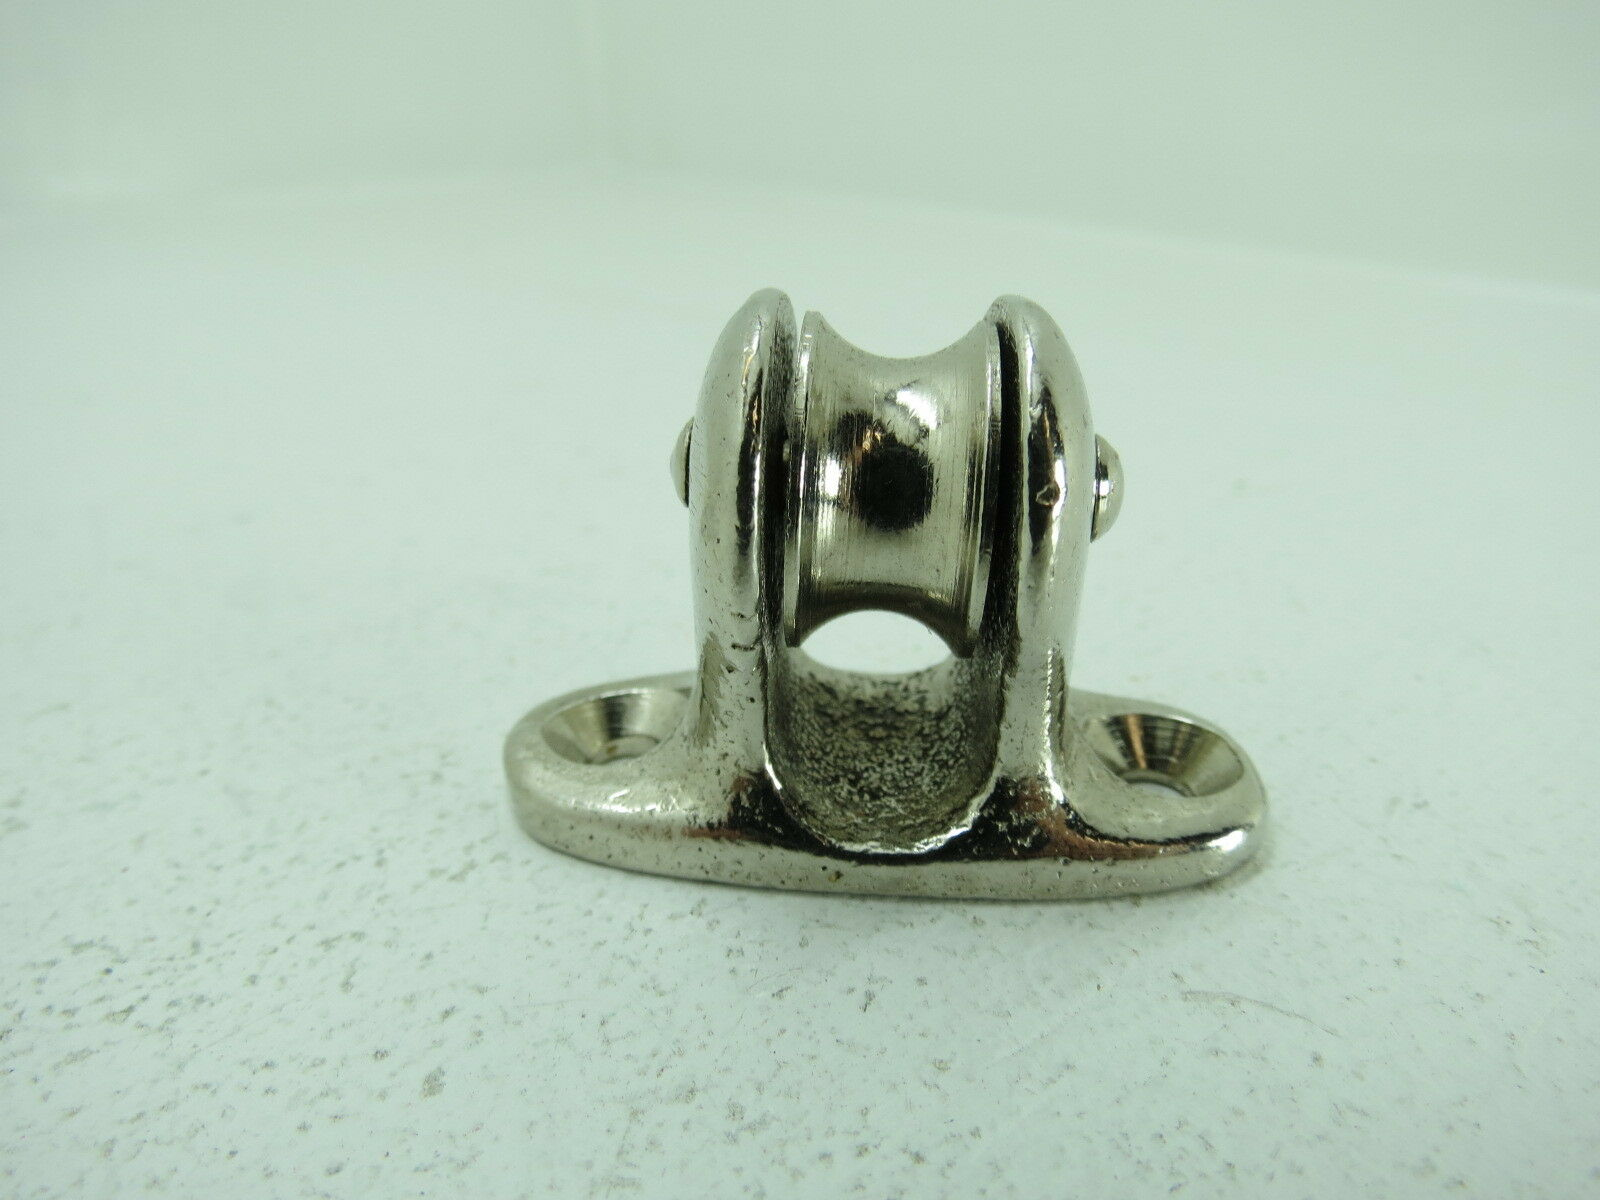 34 INCH CHROME OVER BRONZE DECK PULLEY BLOCK BOAT SHIP BRASS TACKLE C4B228